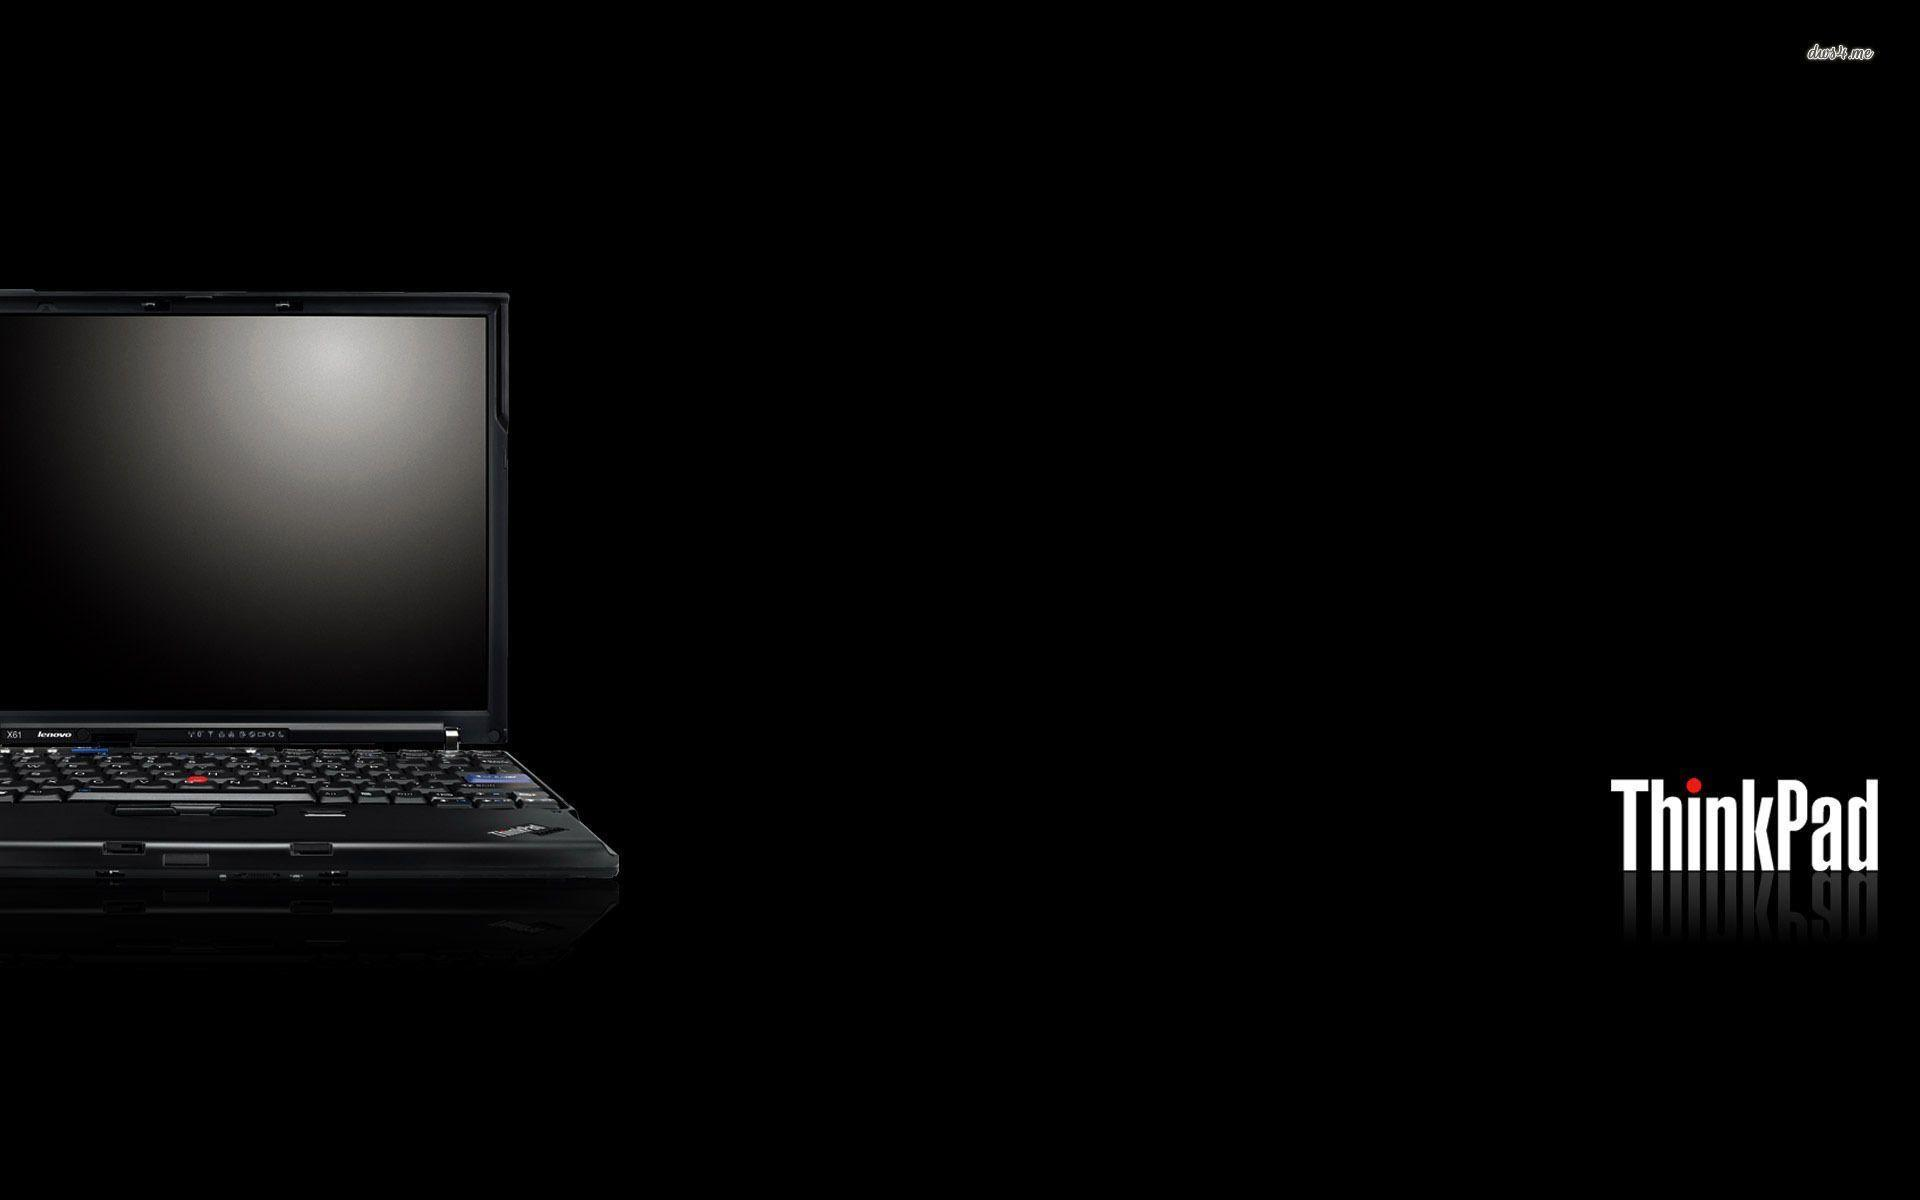 1280x800 wallpaper thinkpad - photo #35